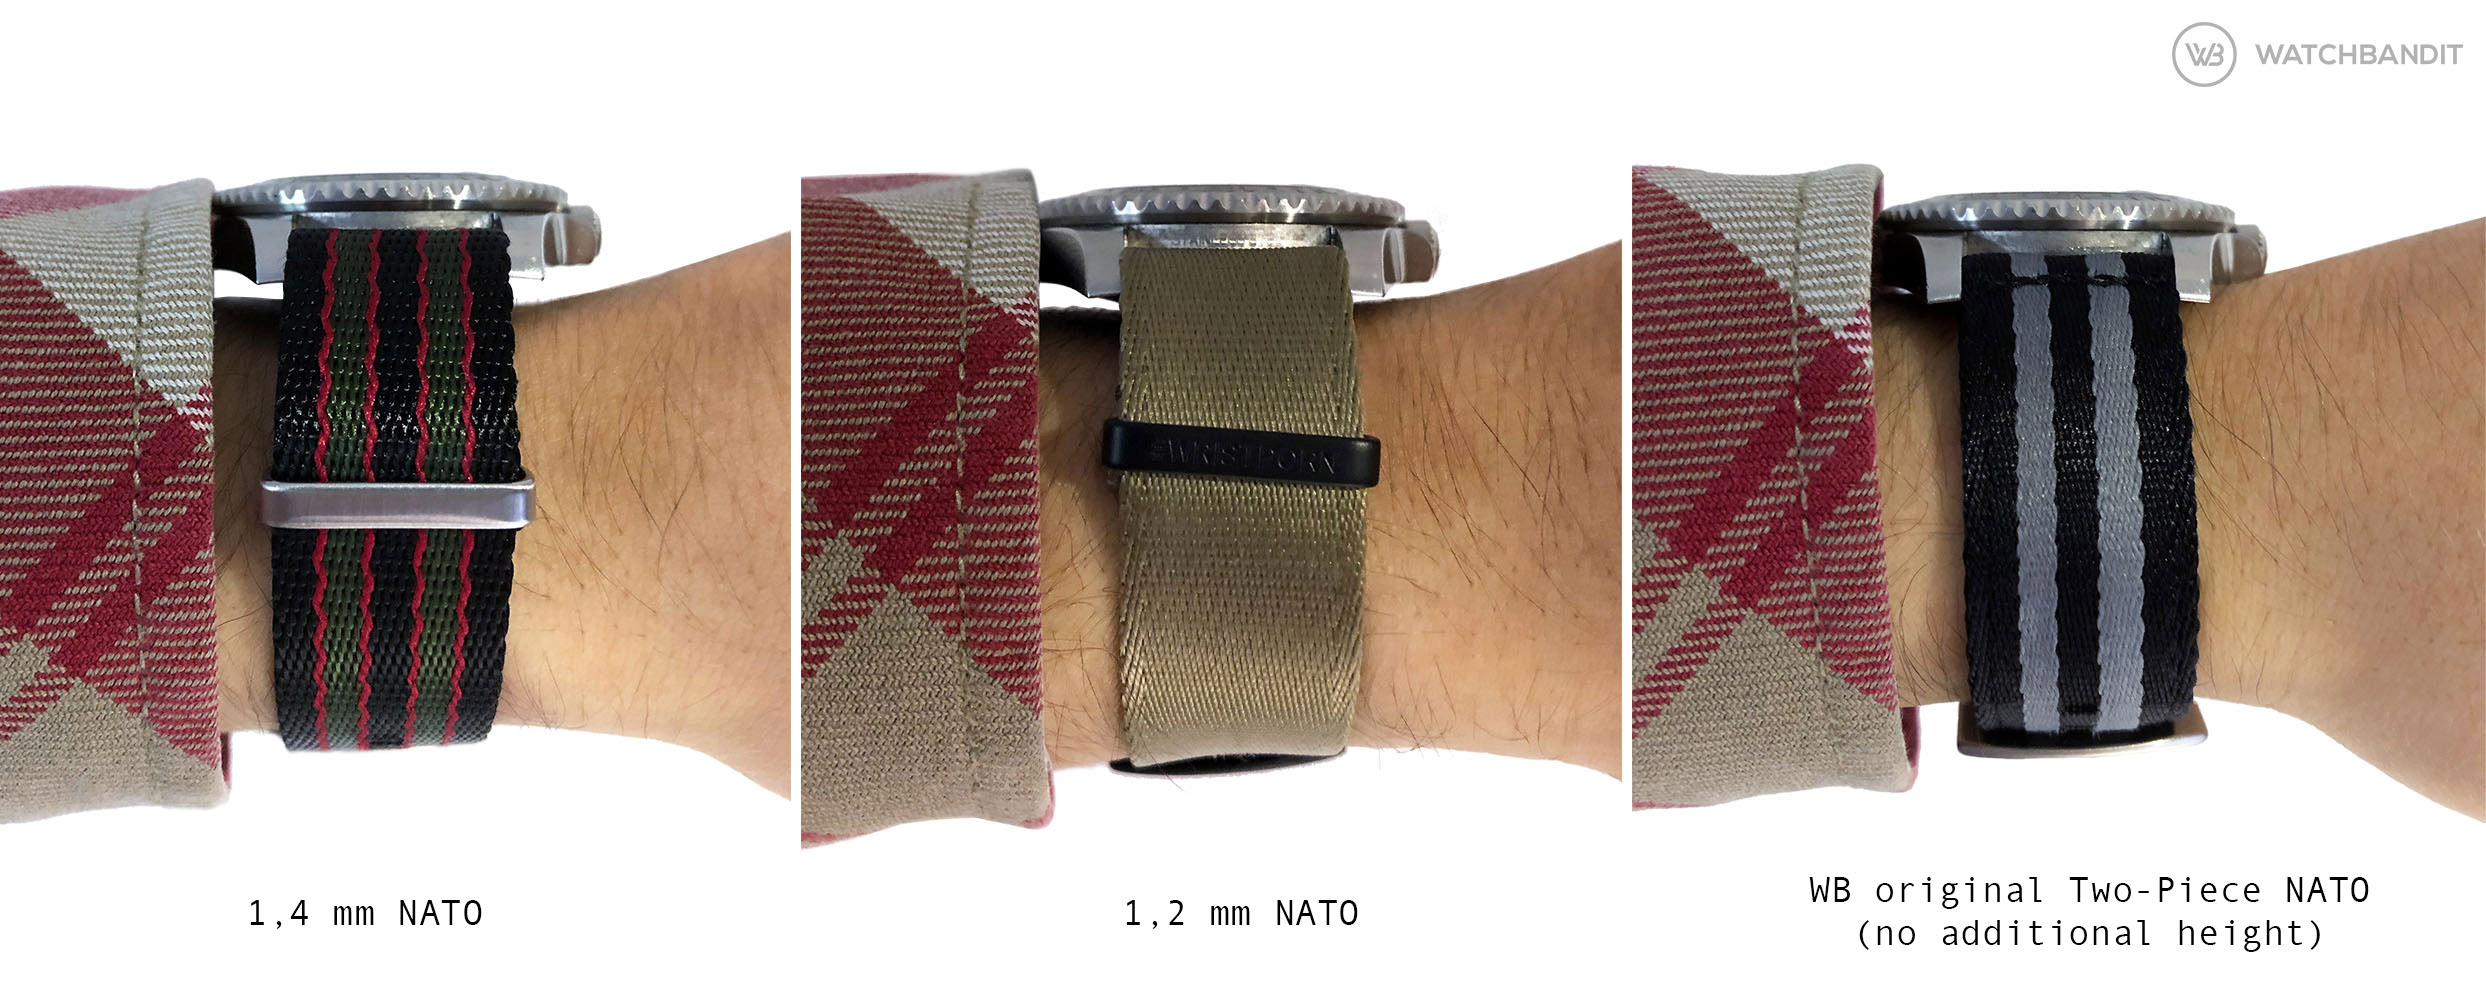 Name:  1.4 1.2 0 mm NATO height comparison 2.jpg Views: 21 Size:  399.5 KB